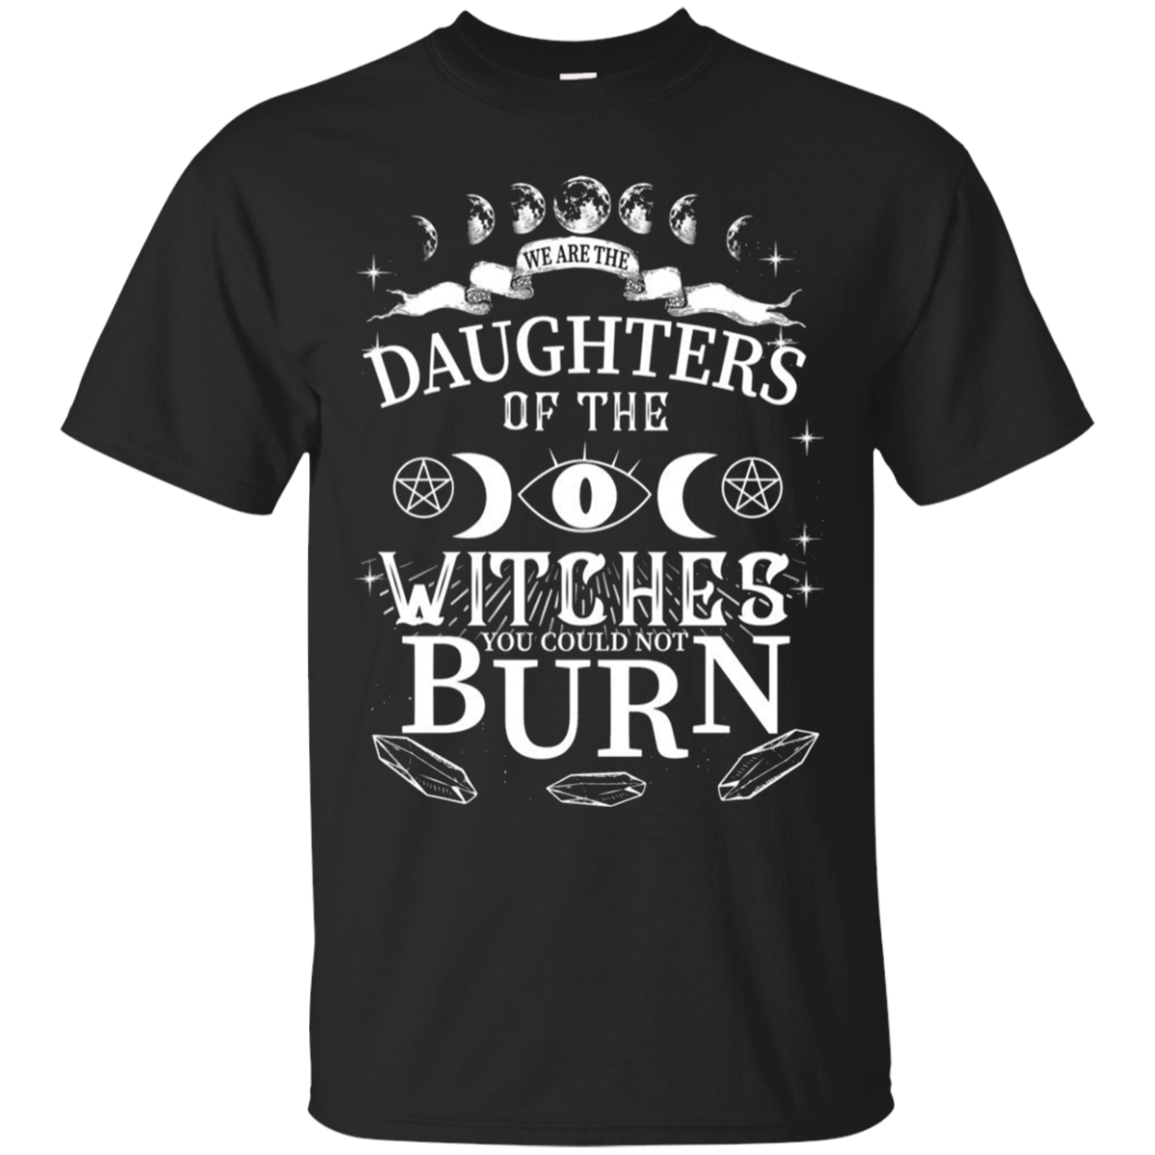 We Are The Daughters Of The Witches You Could Not Burn Halloween T - Shirt For